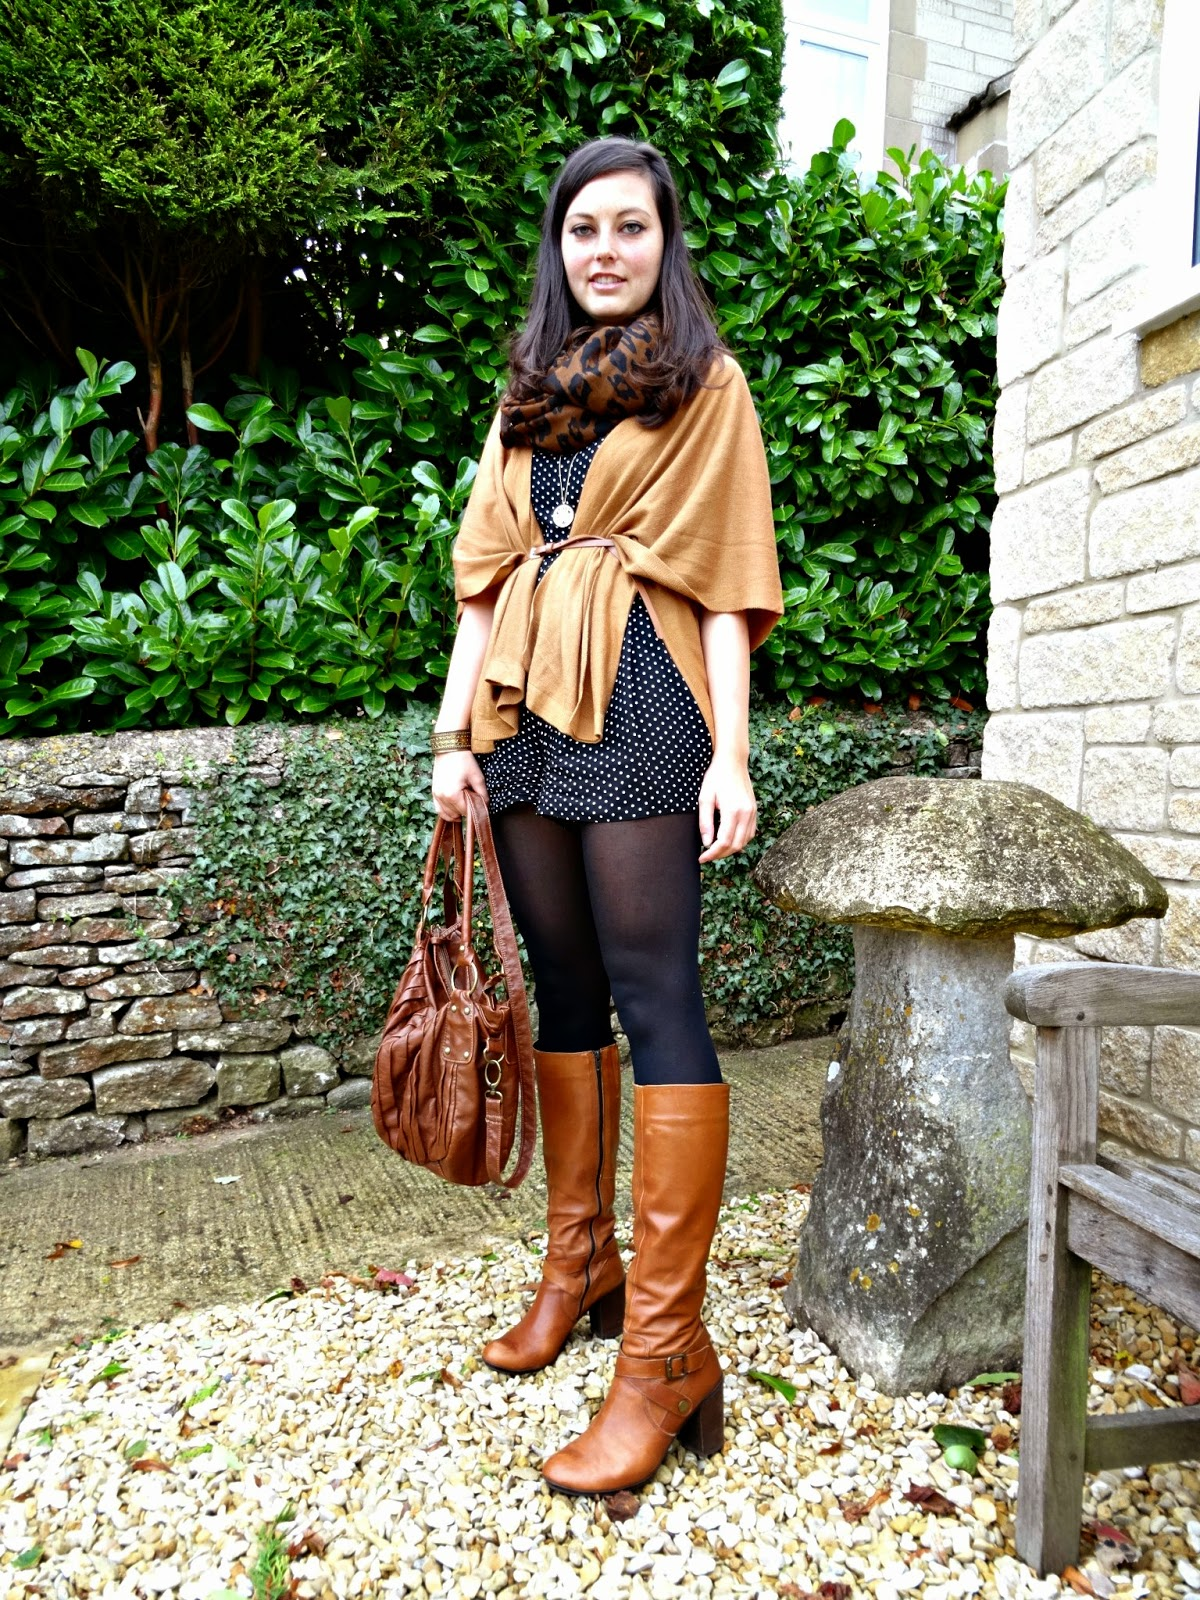 Autumn fashion post in the cotswolds